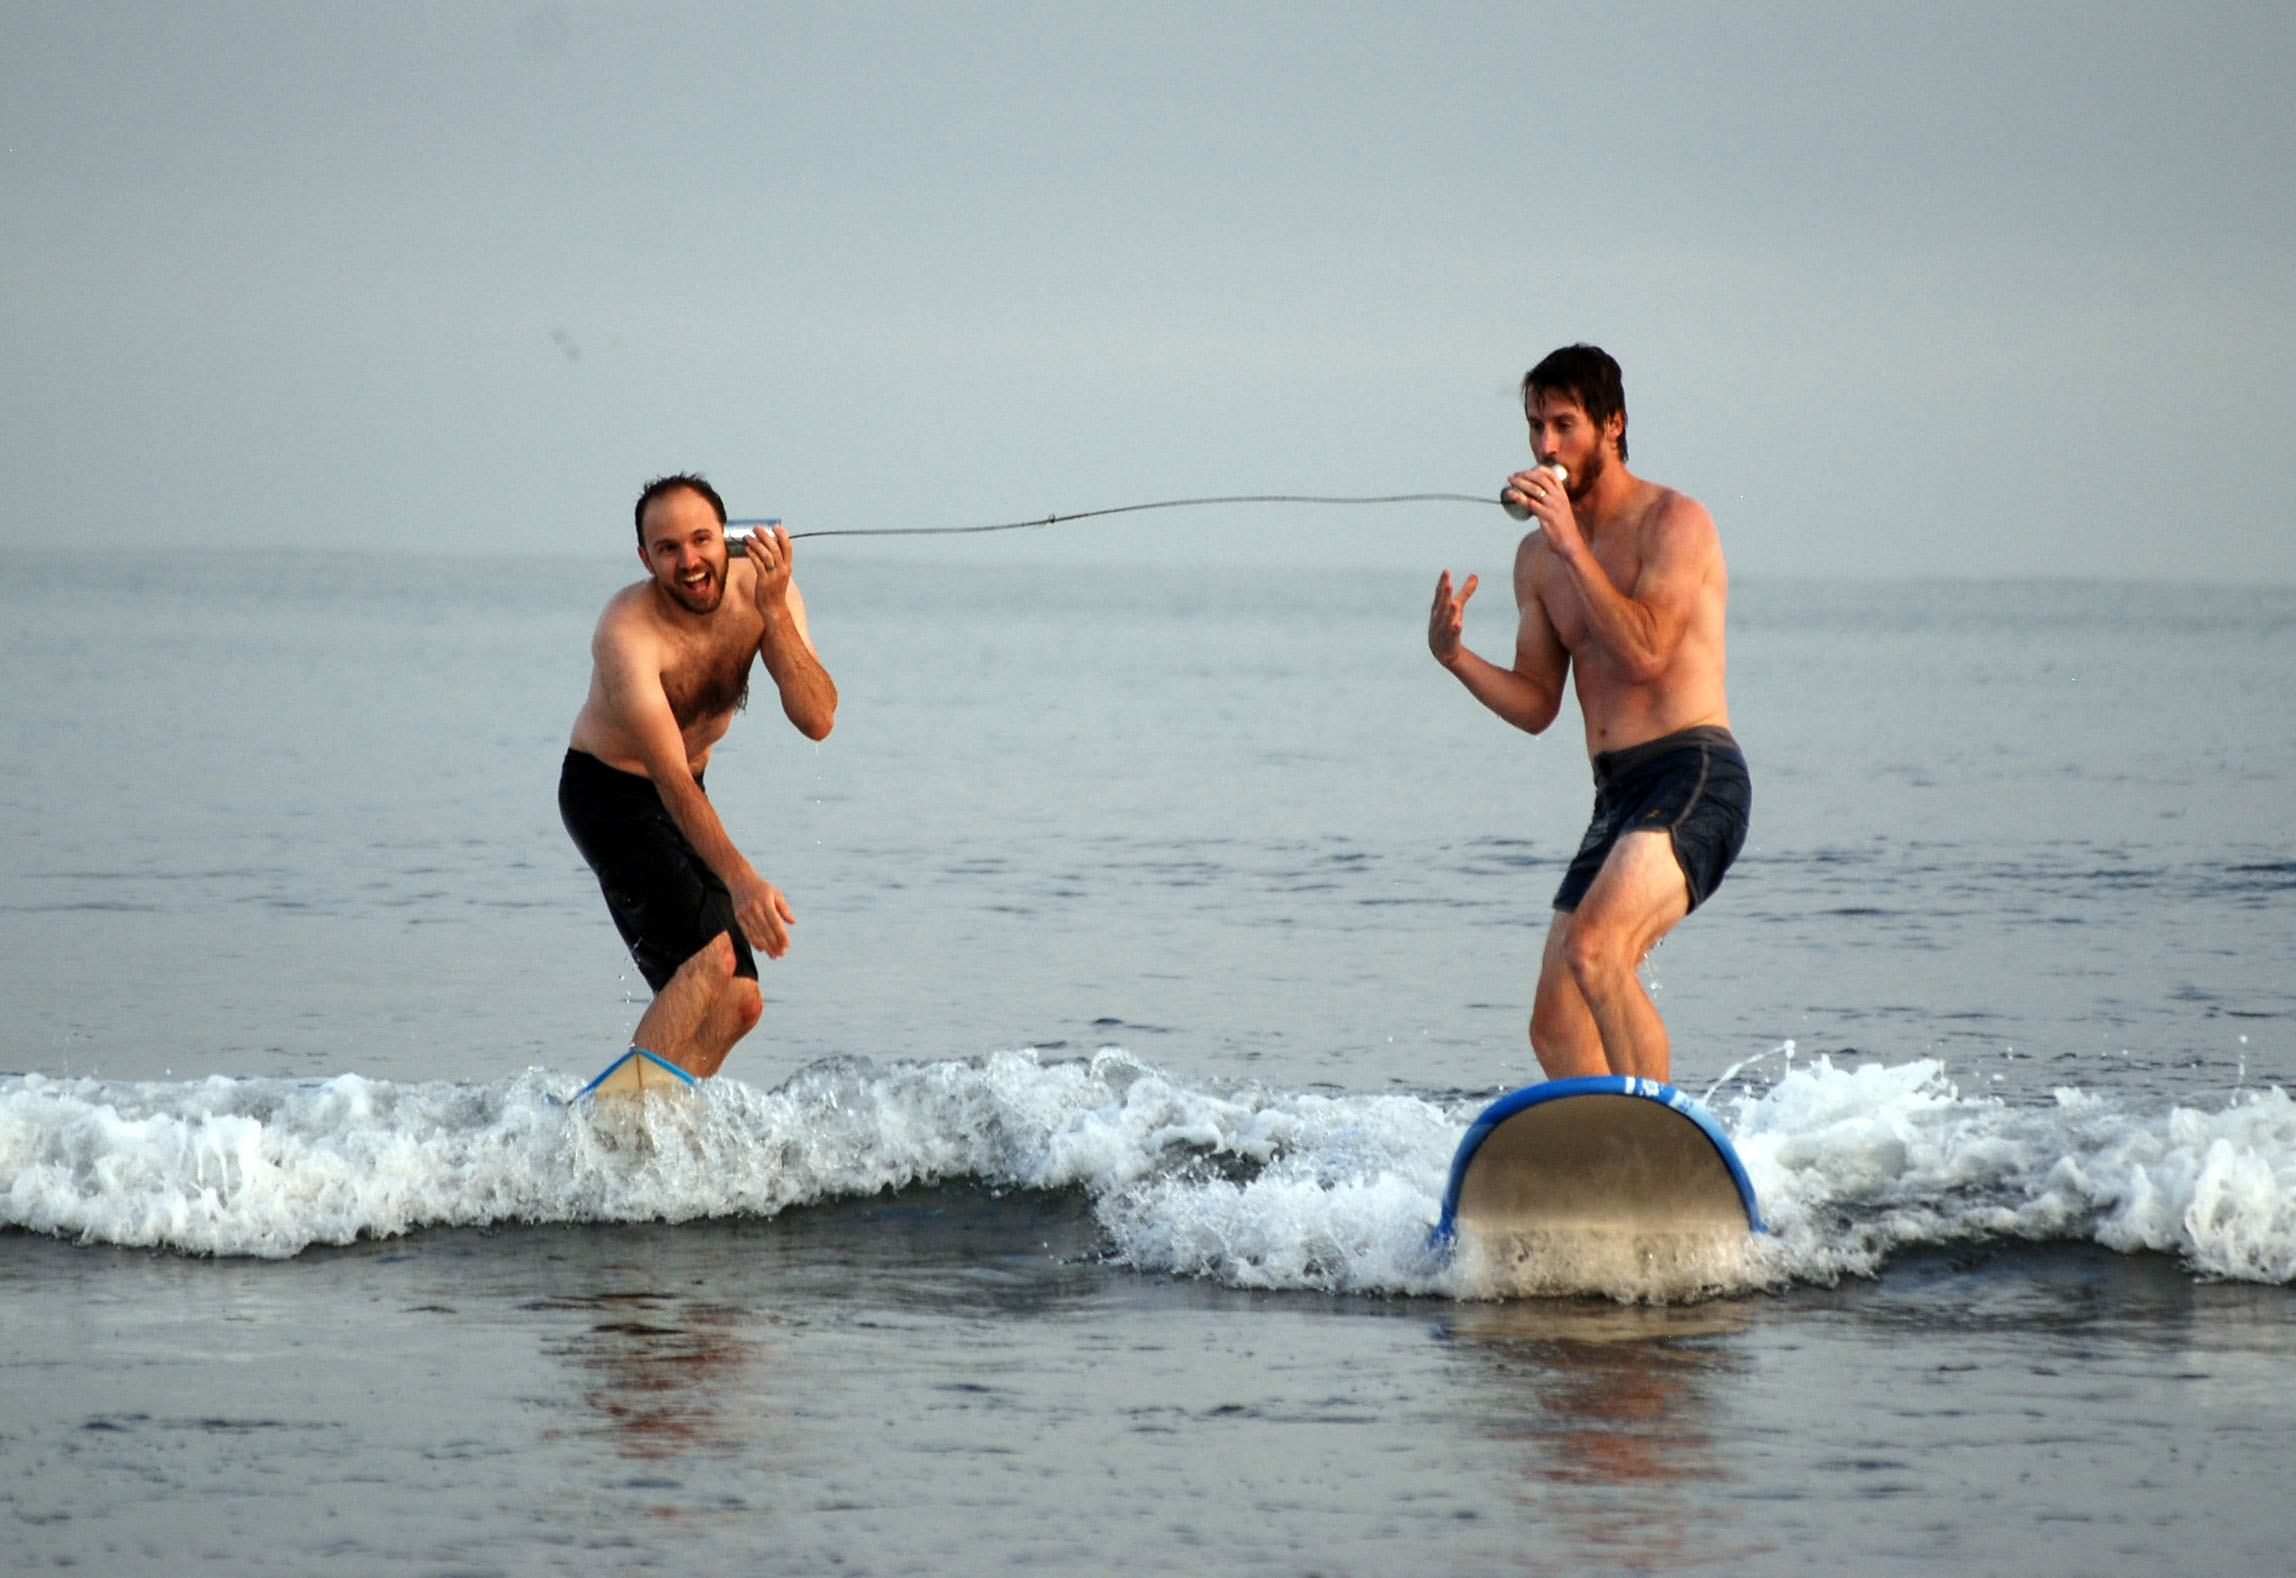 Josh and I surfed while we conversed on a tin can telephone.